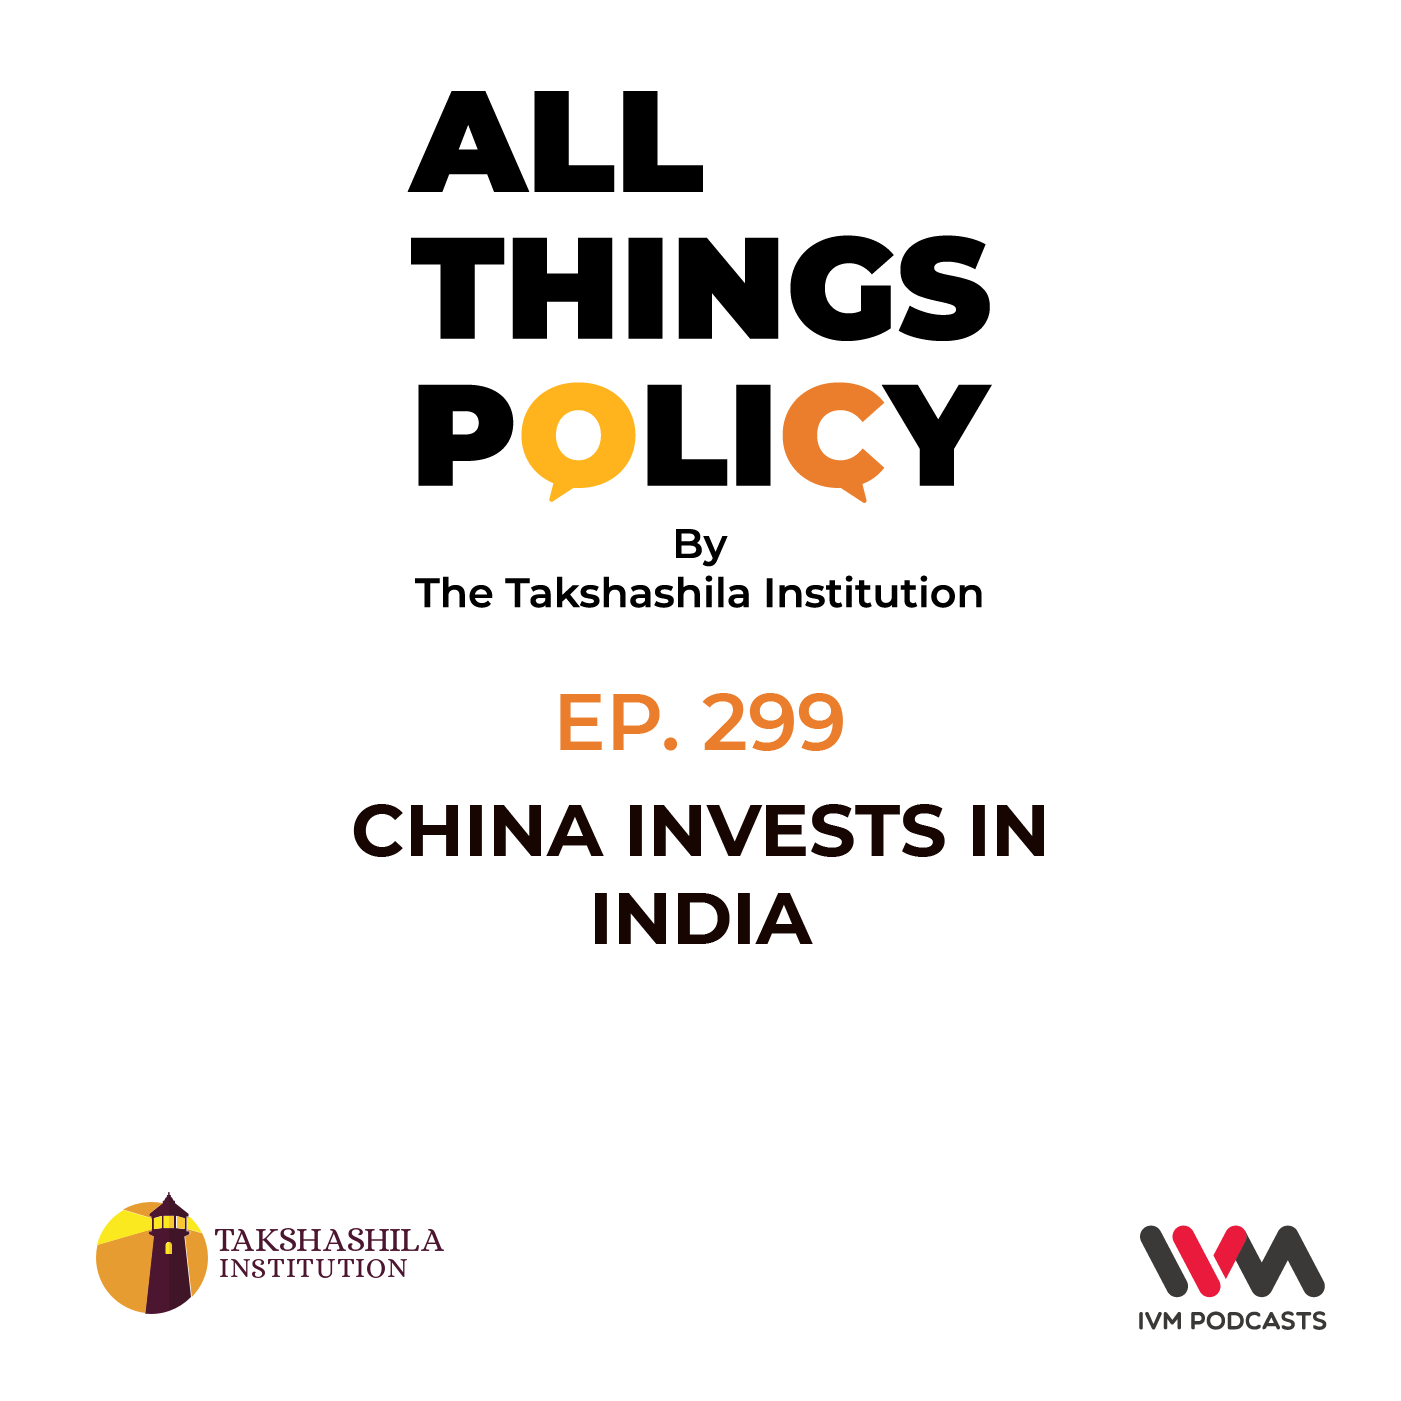 Ep. 299: China Invests in India